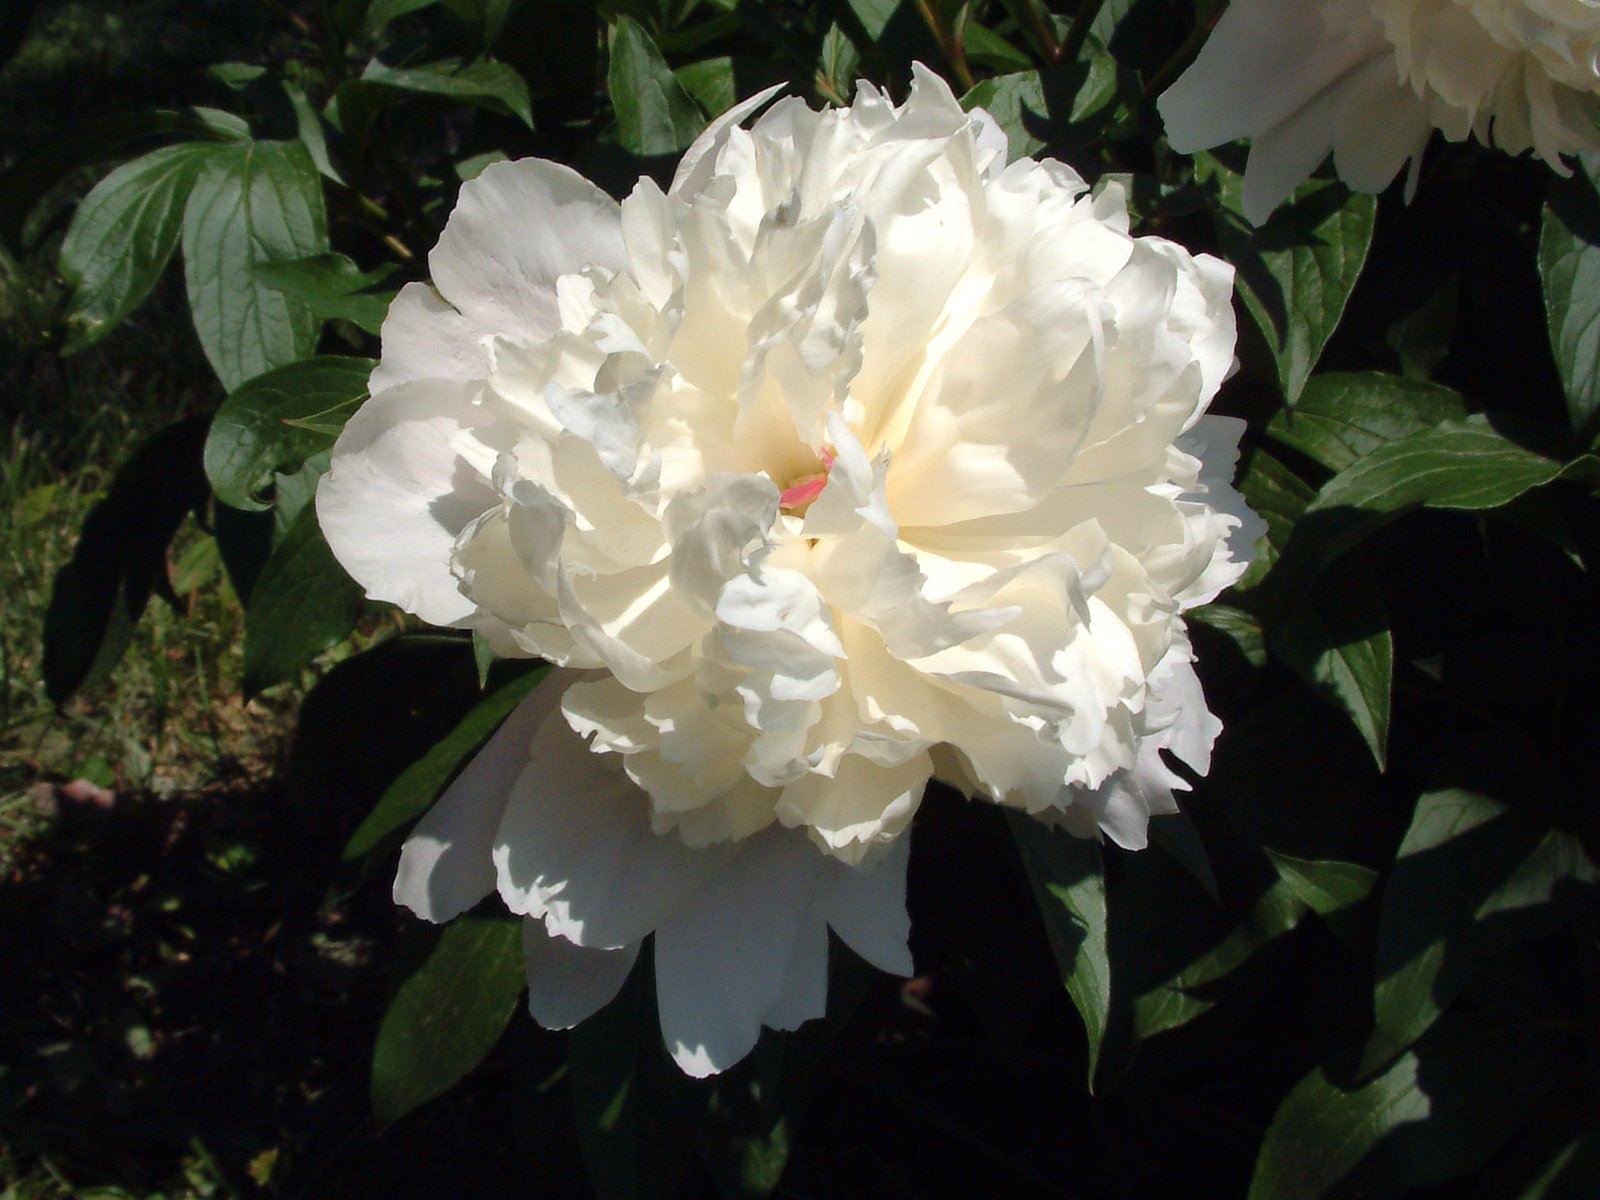 File:White peony.png - Wikipedia, the free encyclopedia: en.wikipedia.org/wiki/File:White_peony.png